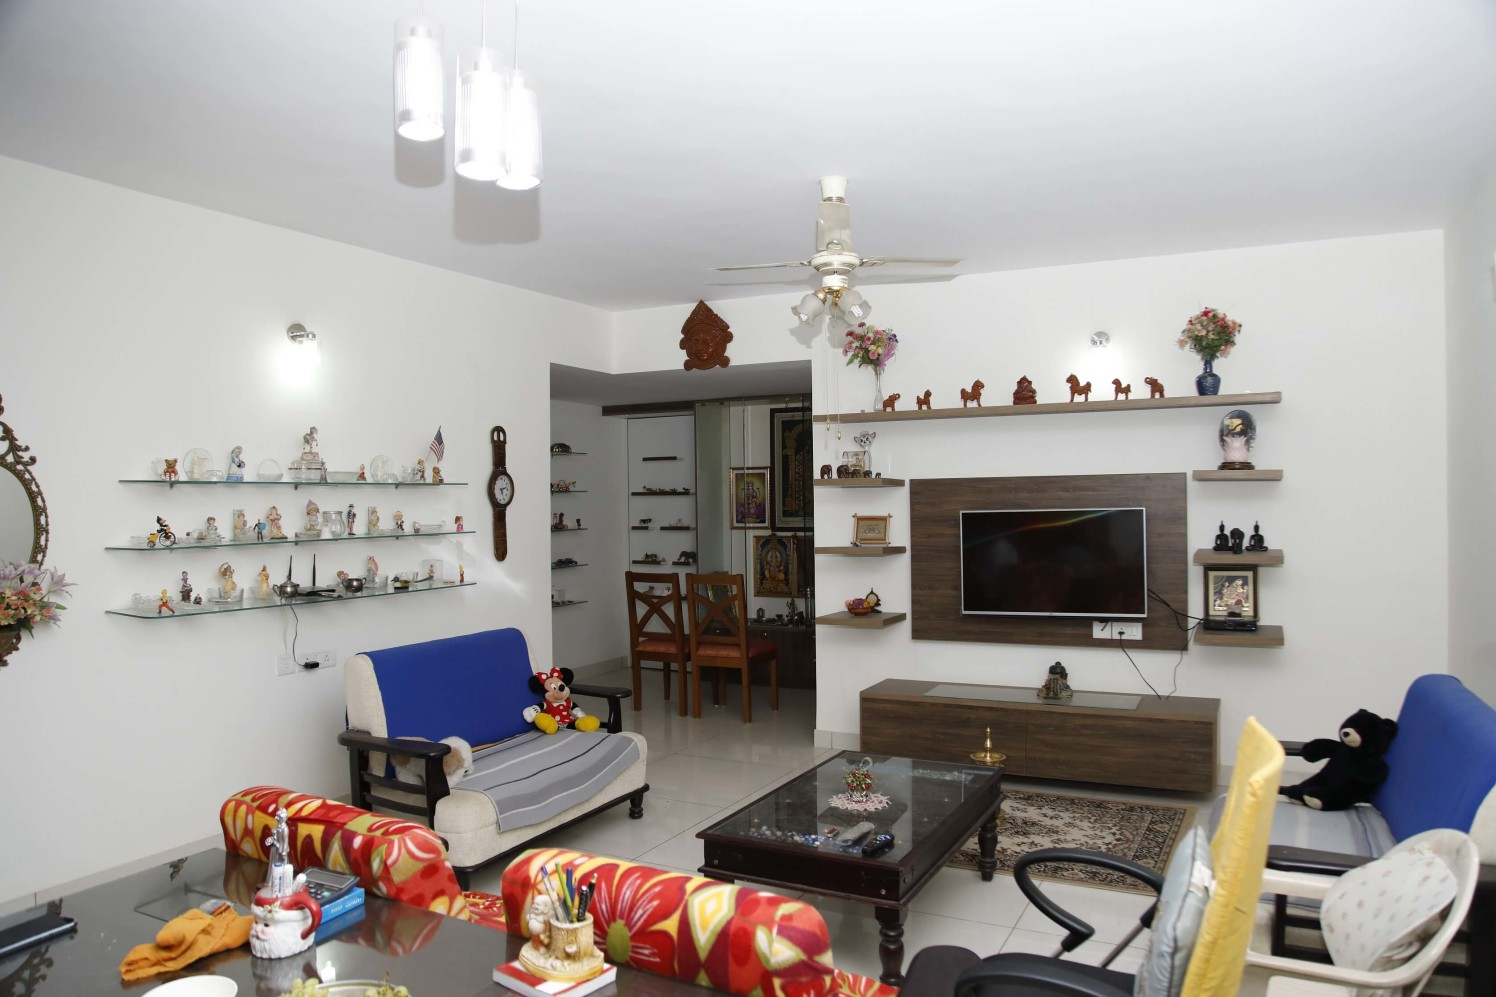 The accessorized Living by Naushad Living-room Modern | Interior Design Photos & Ideas